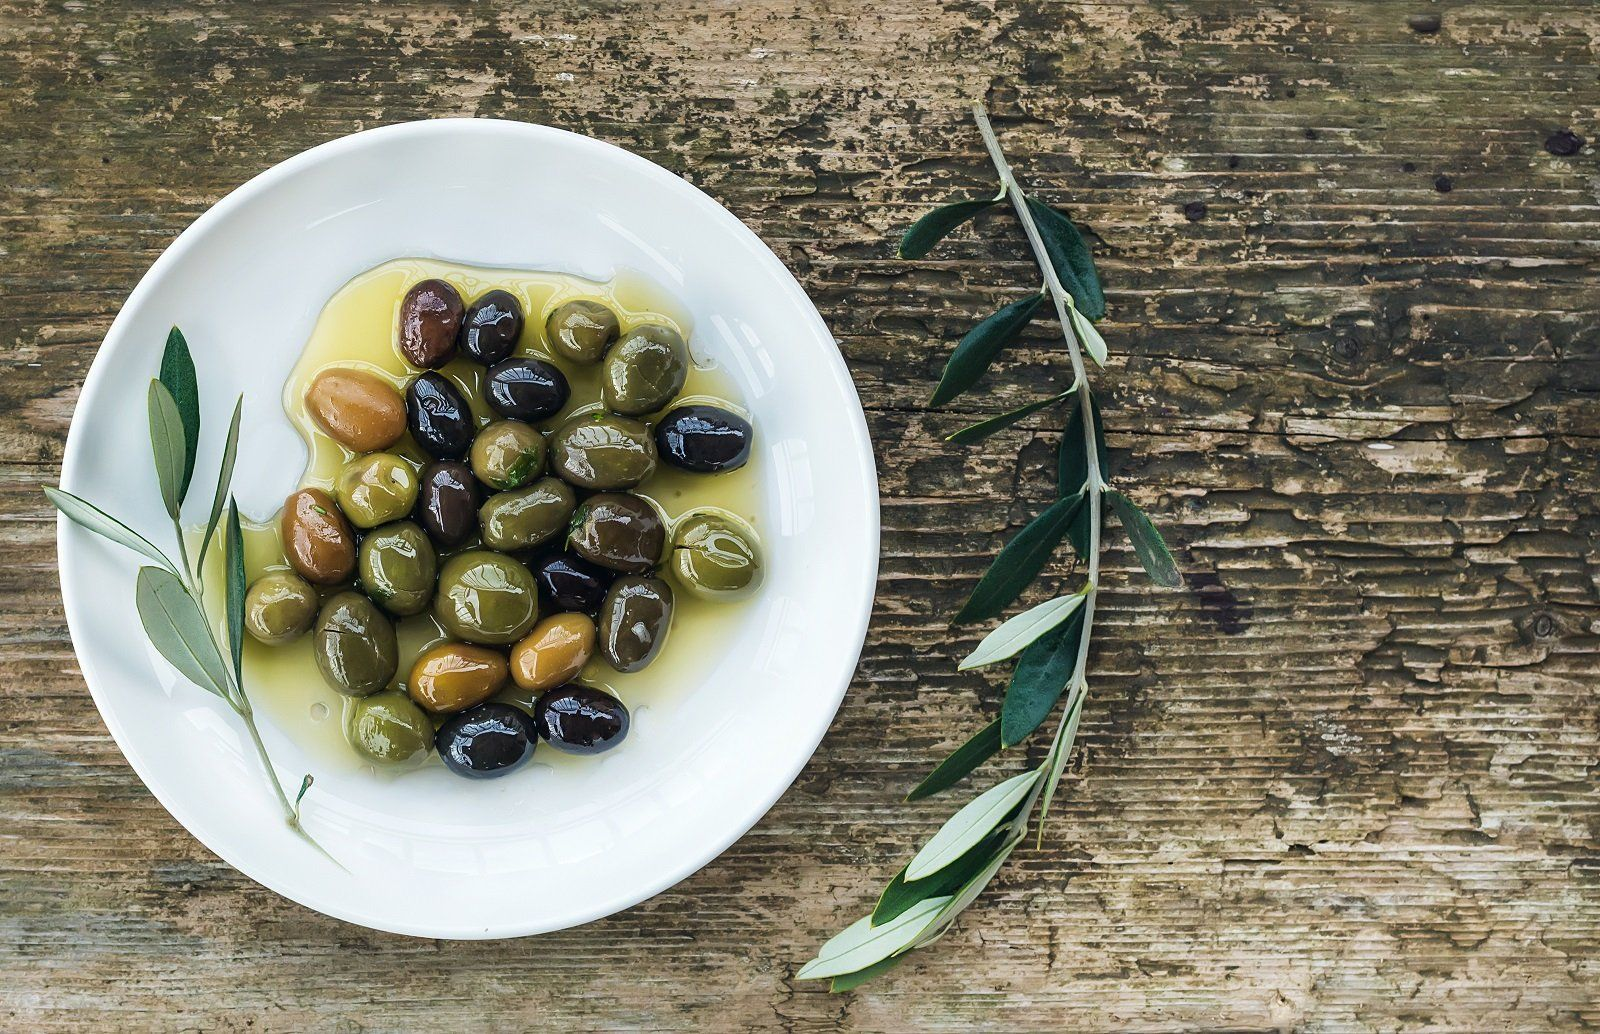 Olives, Sauces & Dips